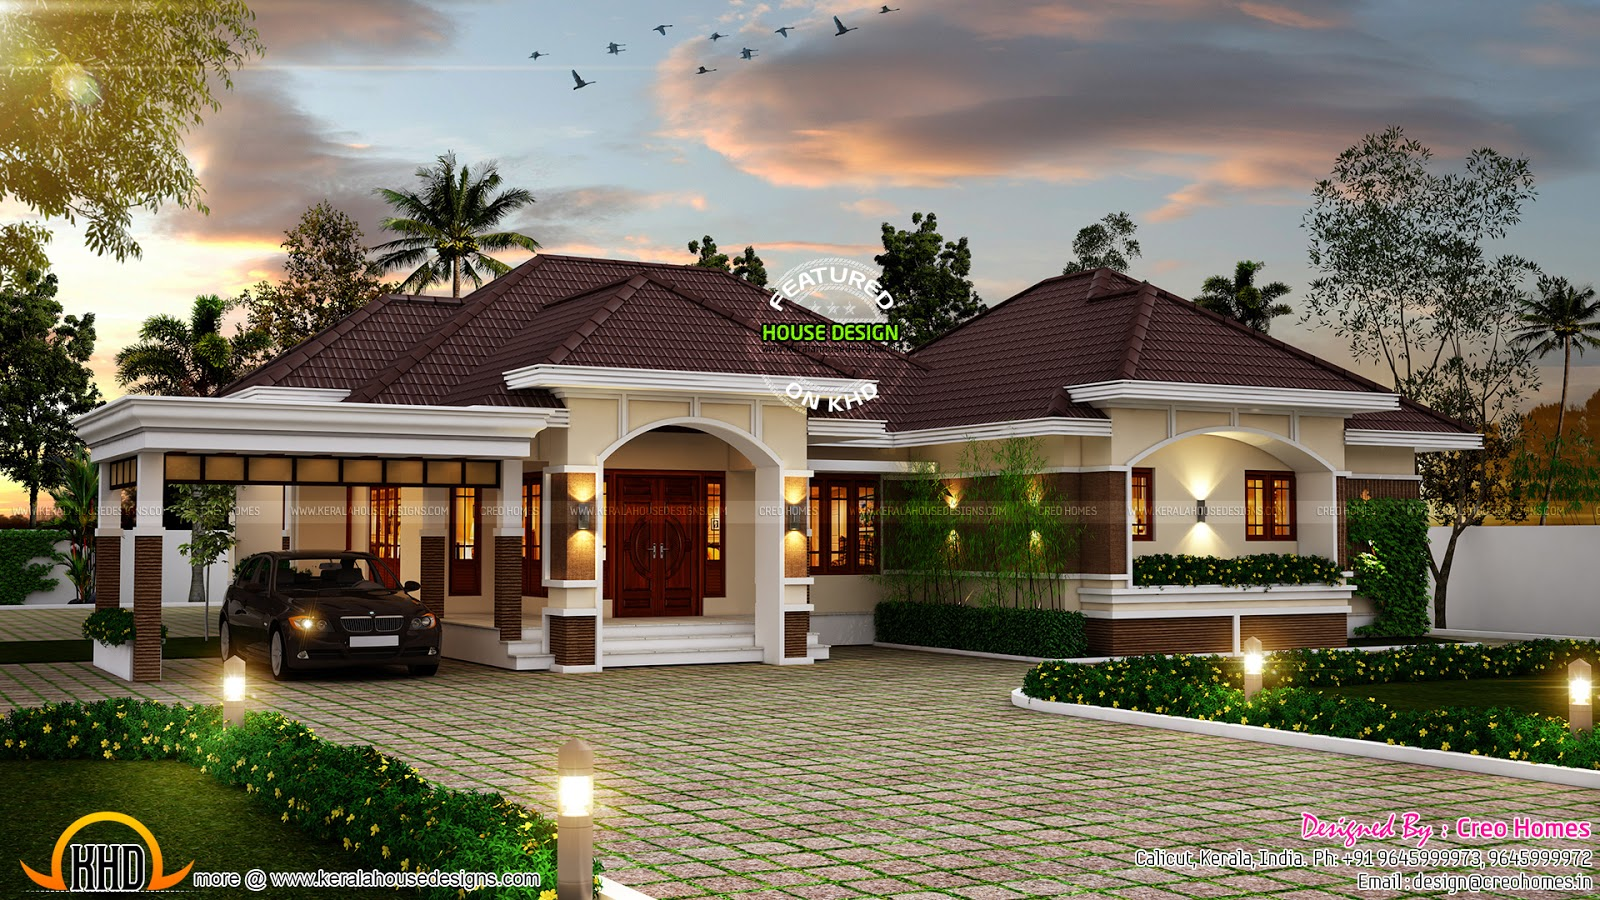 Outstanding bungalow in kerala kerala home design and for New houses plans